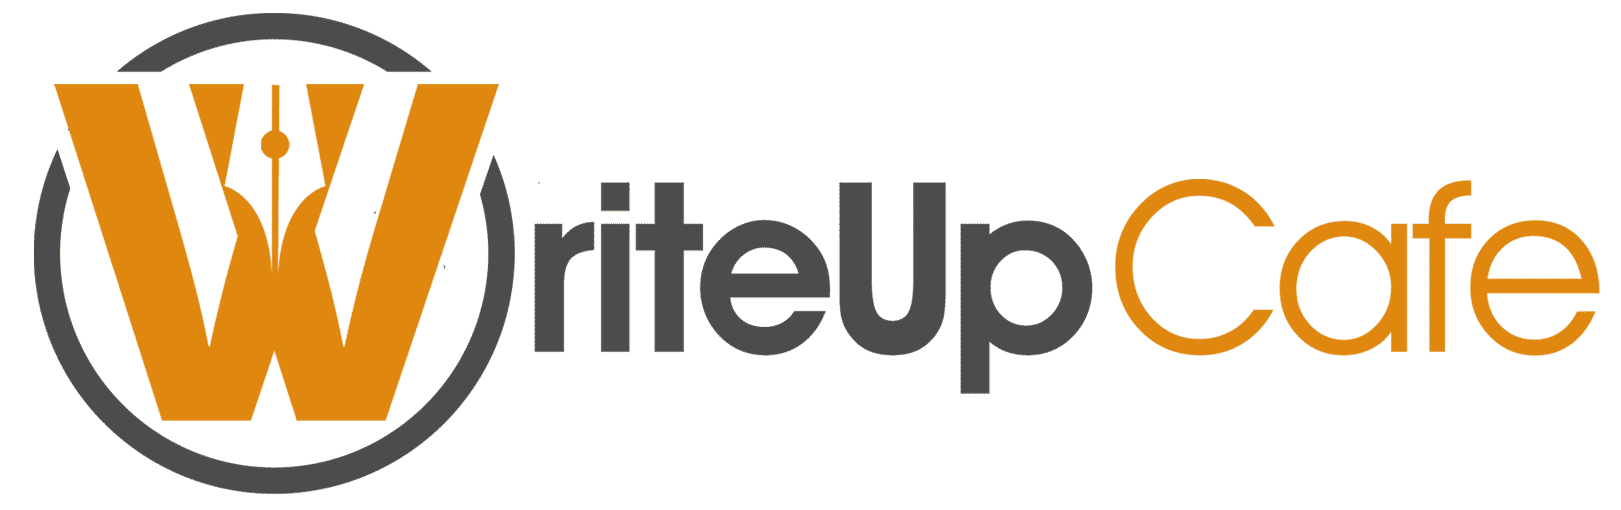 WriteUpCafe.com